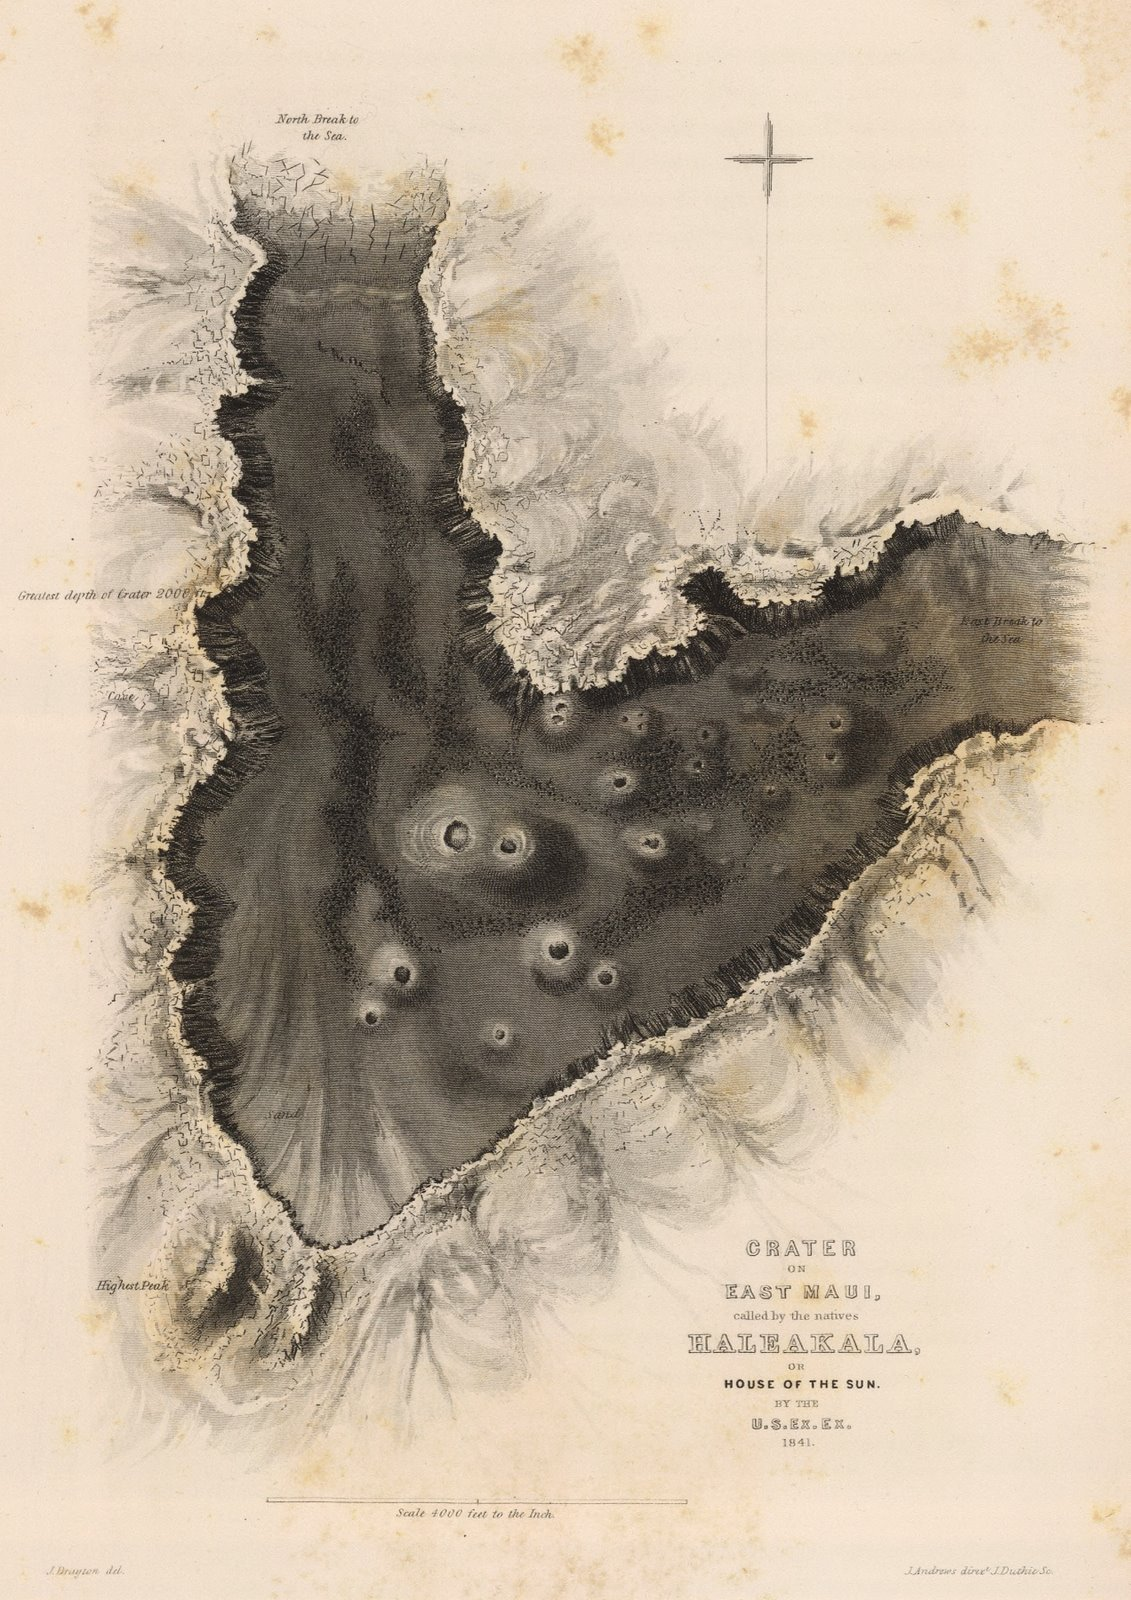 [Crater+on+East+Maui,+called+by+the+natives+Haleakala+or+House+of+the+Sun.jpg]